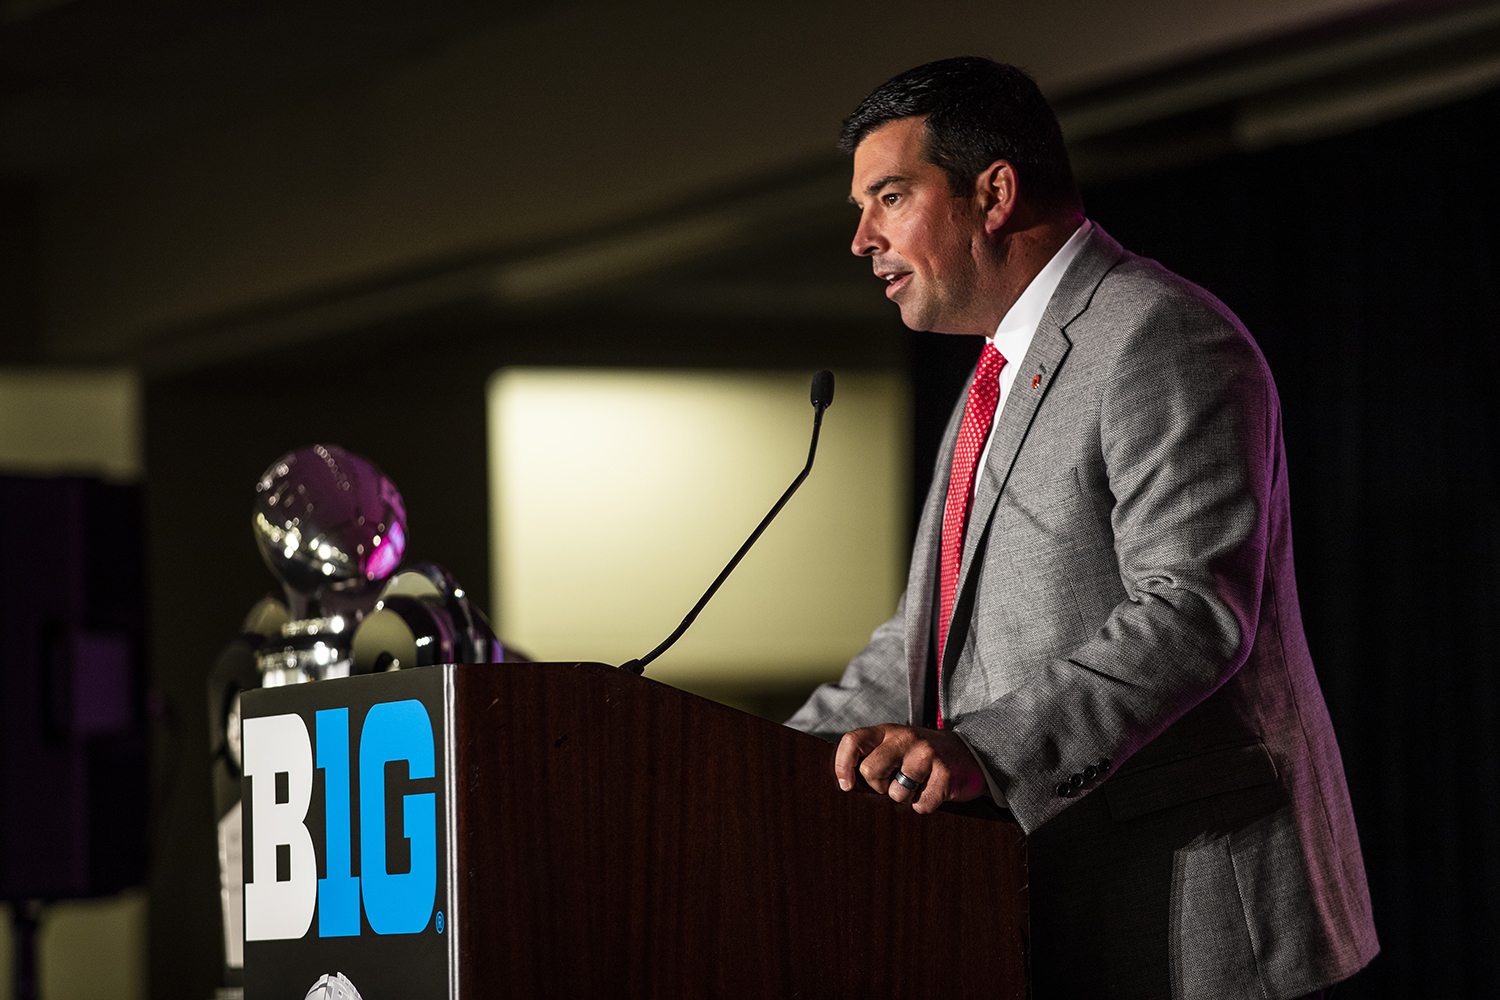 Ohio State head coach, Ryan Day, addresses the media during the Big Ten Football Media Day in Chicago, Ill., on Thursday, July 18, 2019.